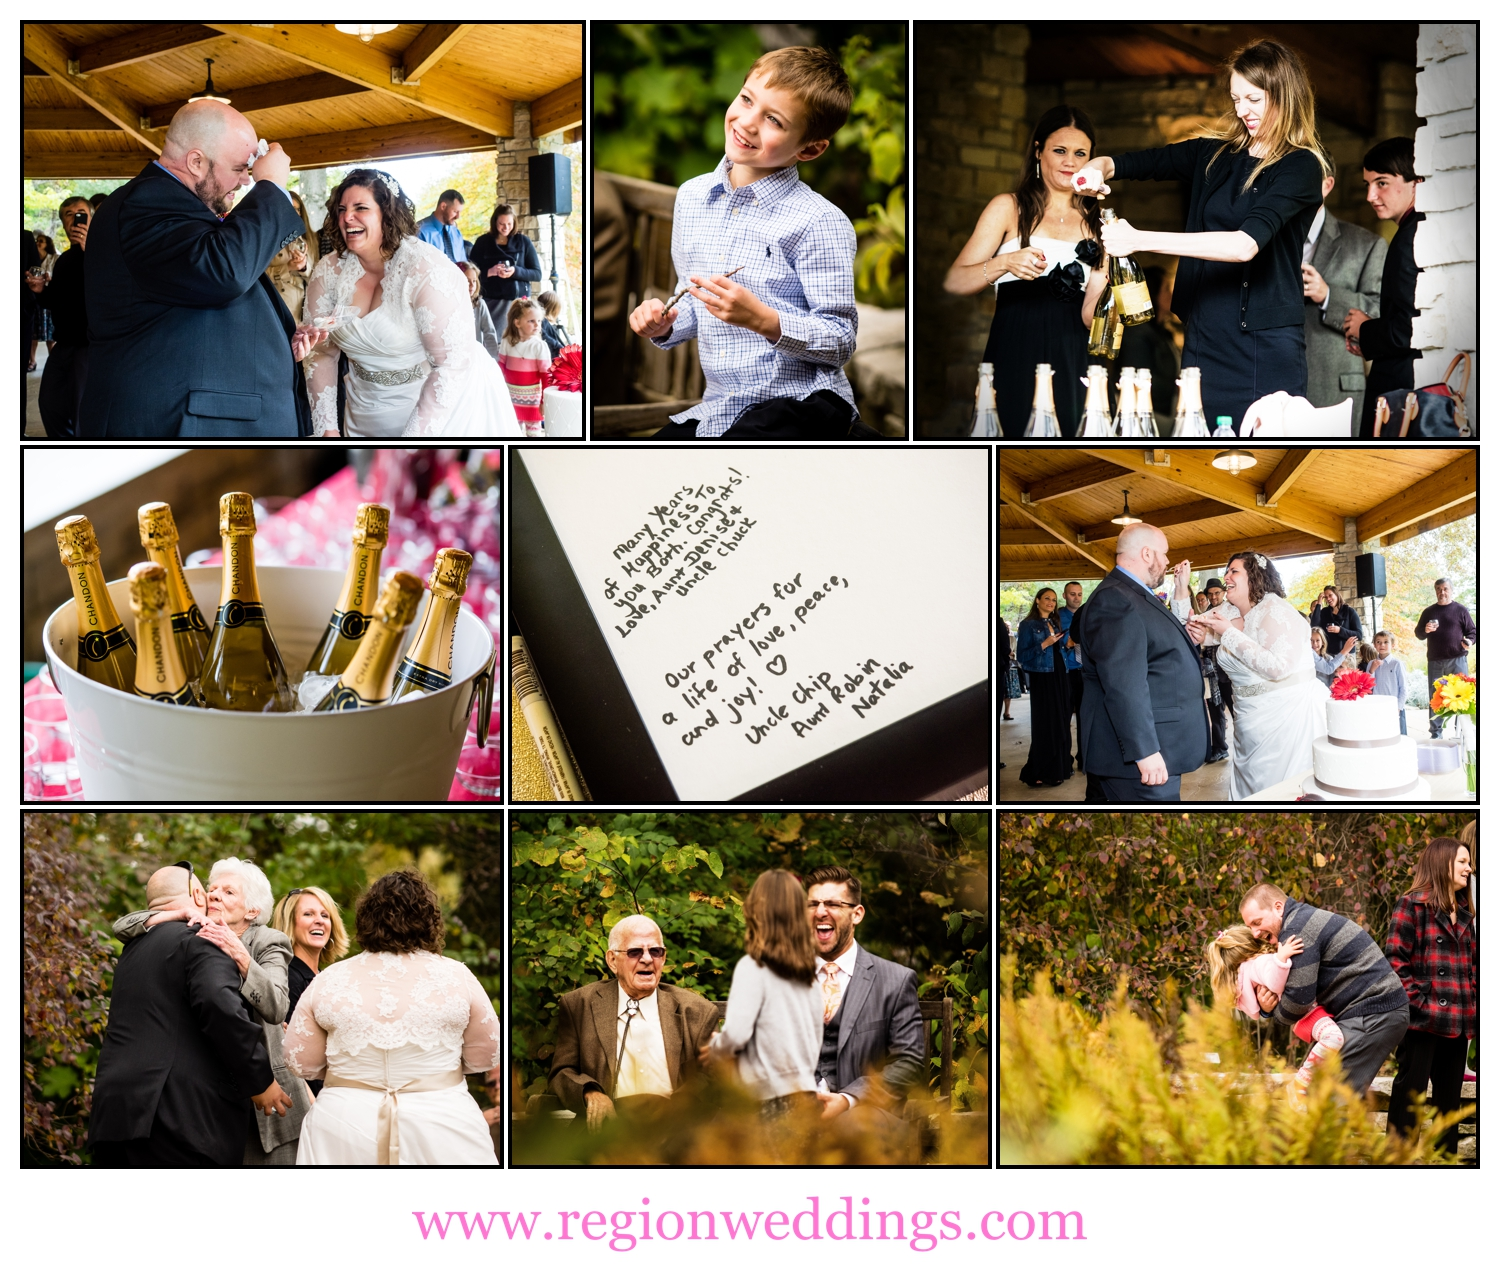 Open air wedding reception at the Taltree Arboretum Pavilion.